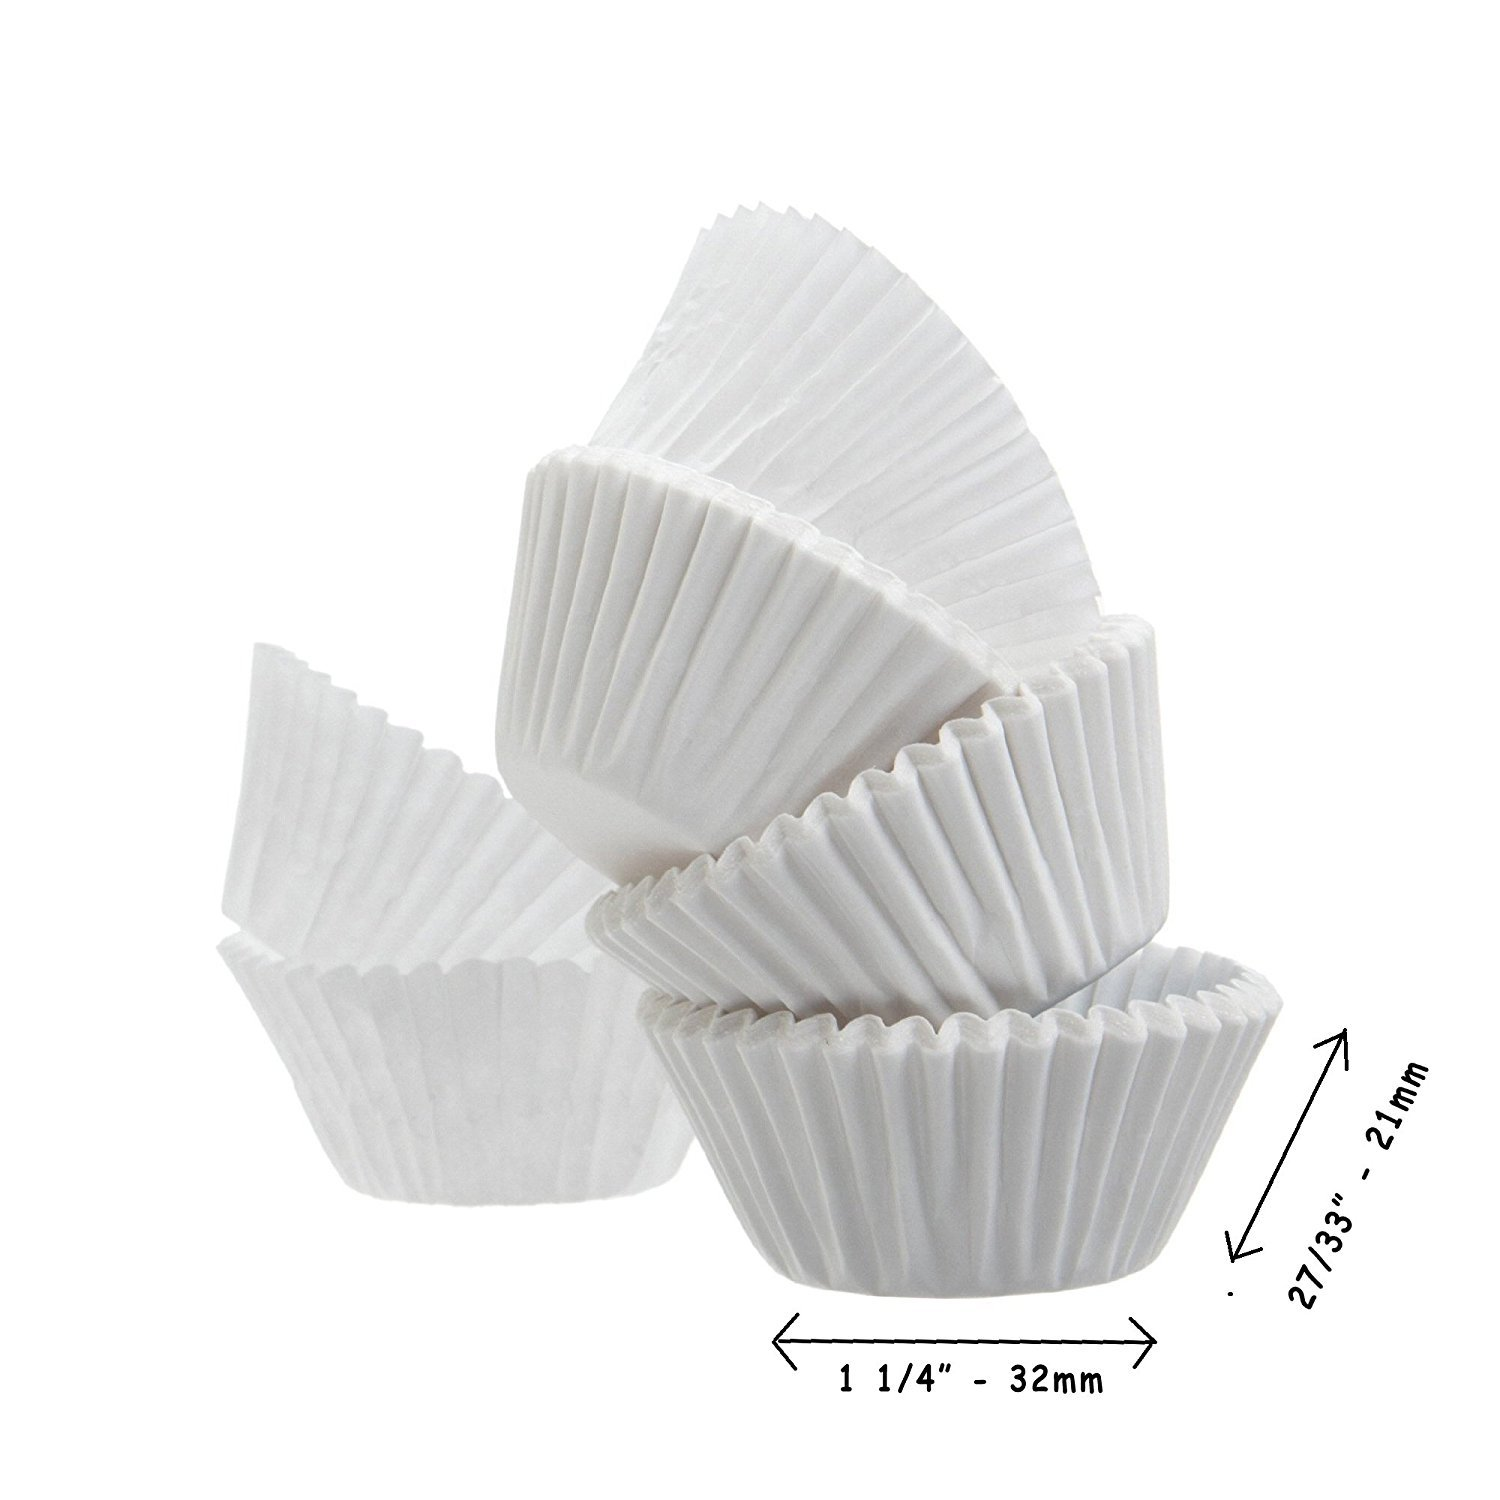 Baking Cup A World of Deals Best Quality Standard Size White Cupcake Paper 4 Packs Cup Liners 500 Pcs A World of Deals® AWOD5668